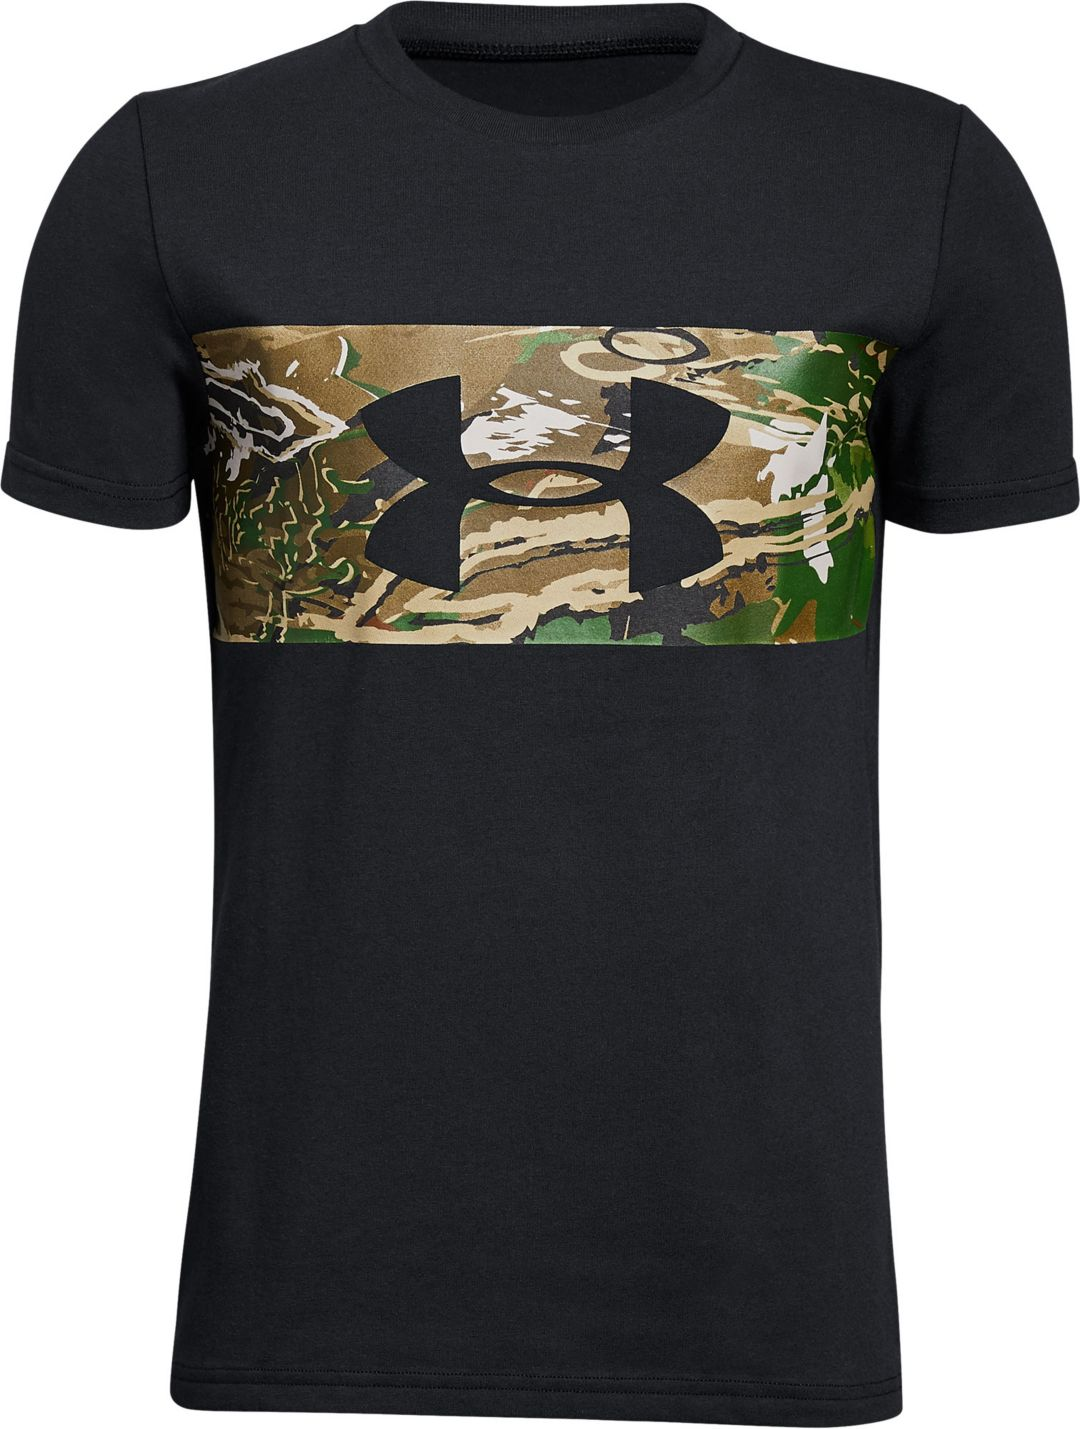 c7054043f Under Armour Boys' Banded Camo Short Sleeve T-Shirt | Field & Stream